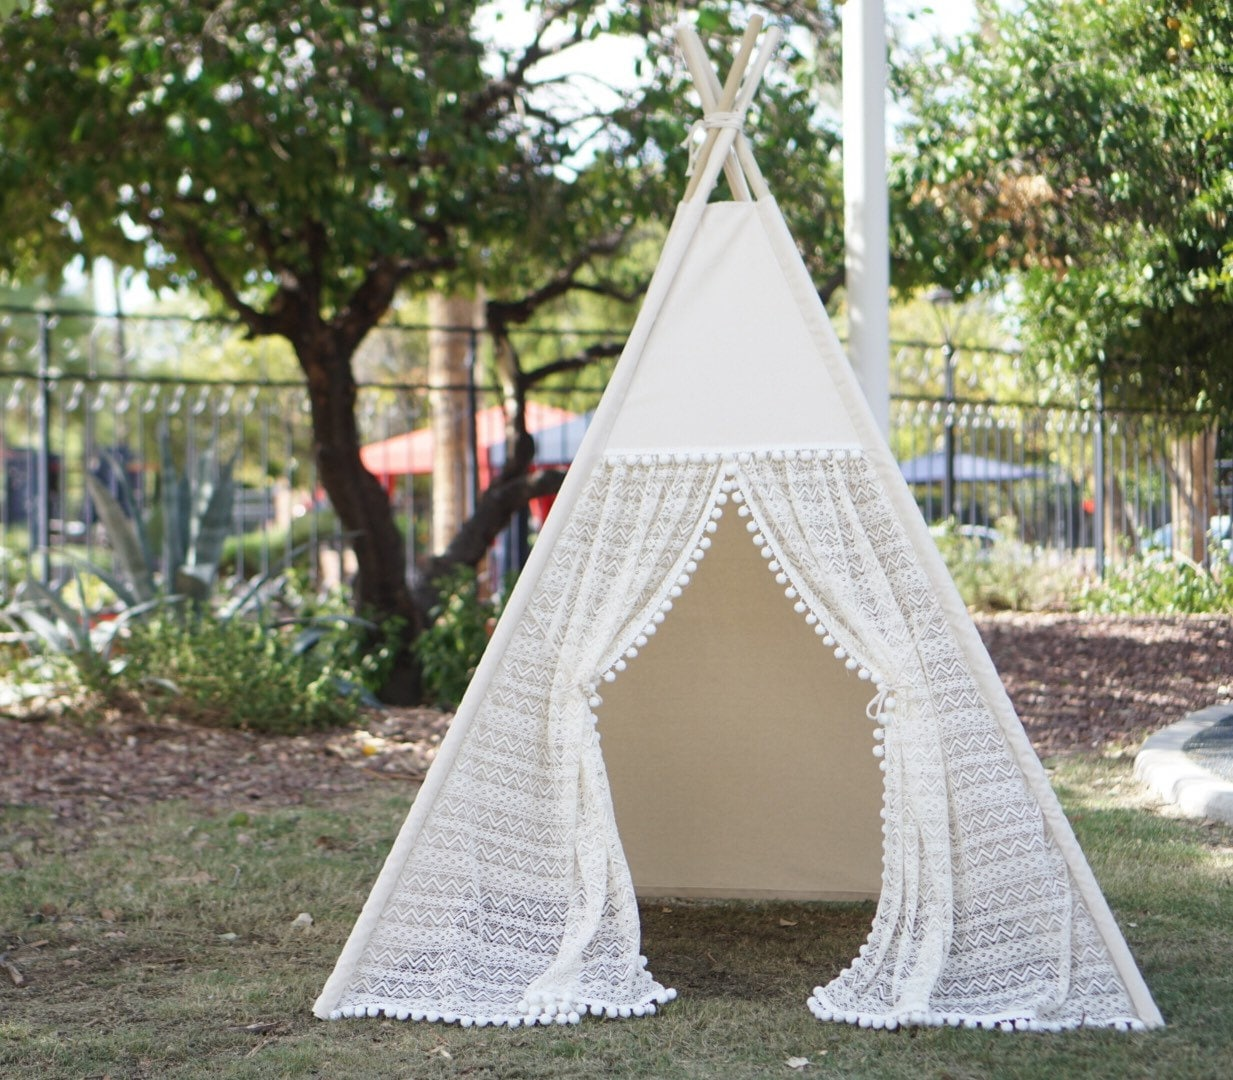 ?zoom & Pocahontas ruffle lace teepee tent with pompom trim/kids Play